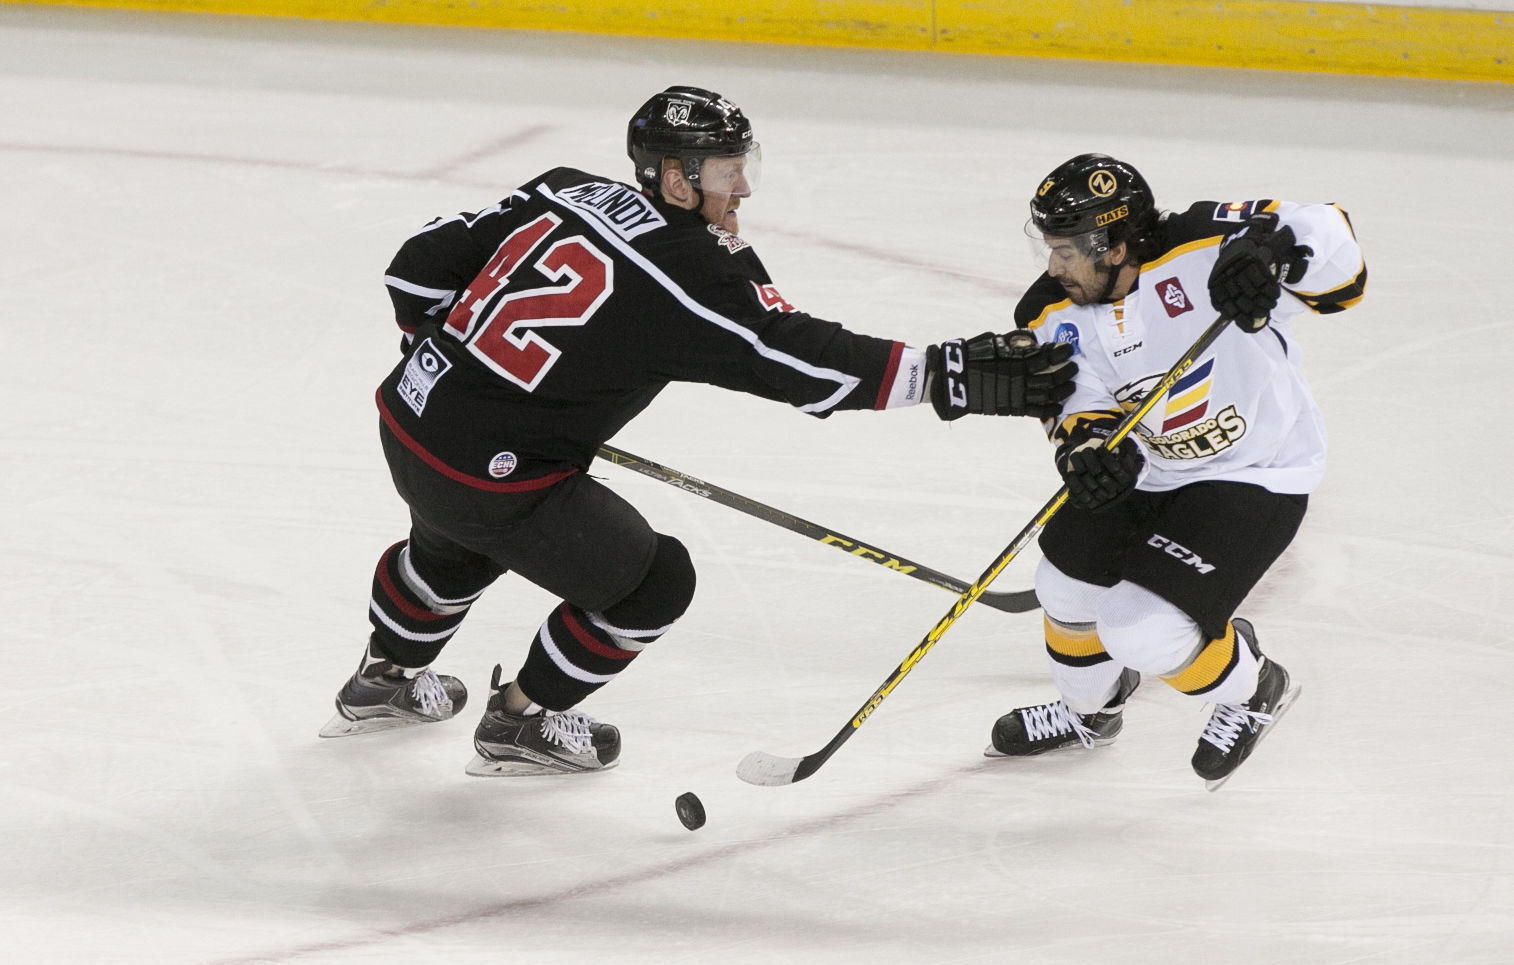 ECHL: Eagles Dominate Rush In All Phases Of The Game